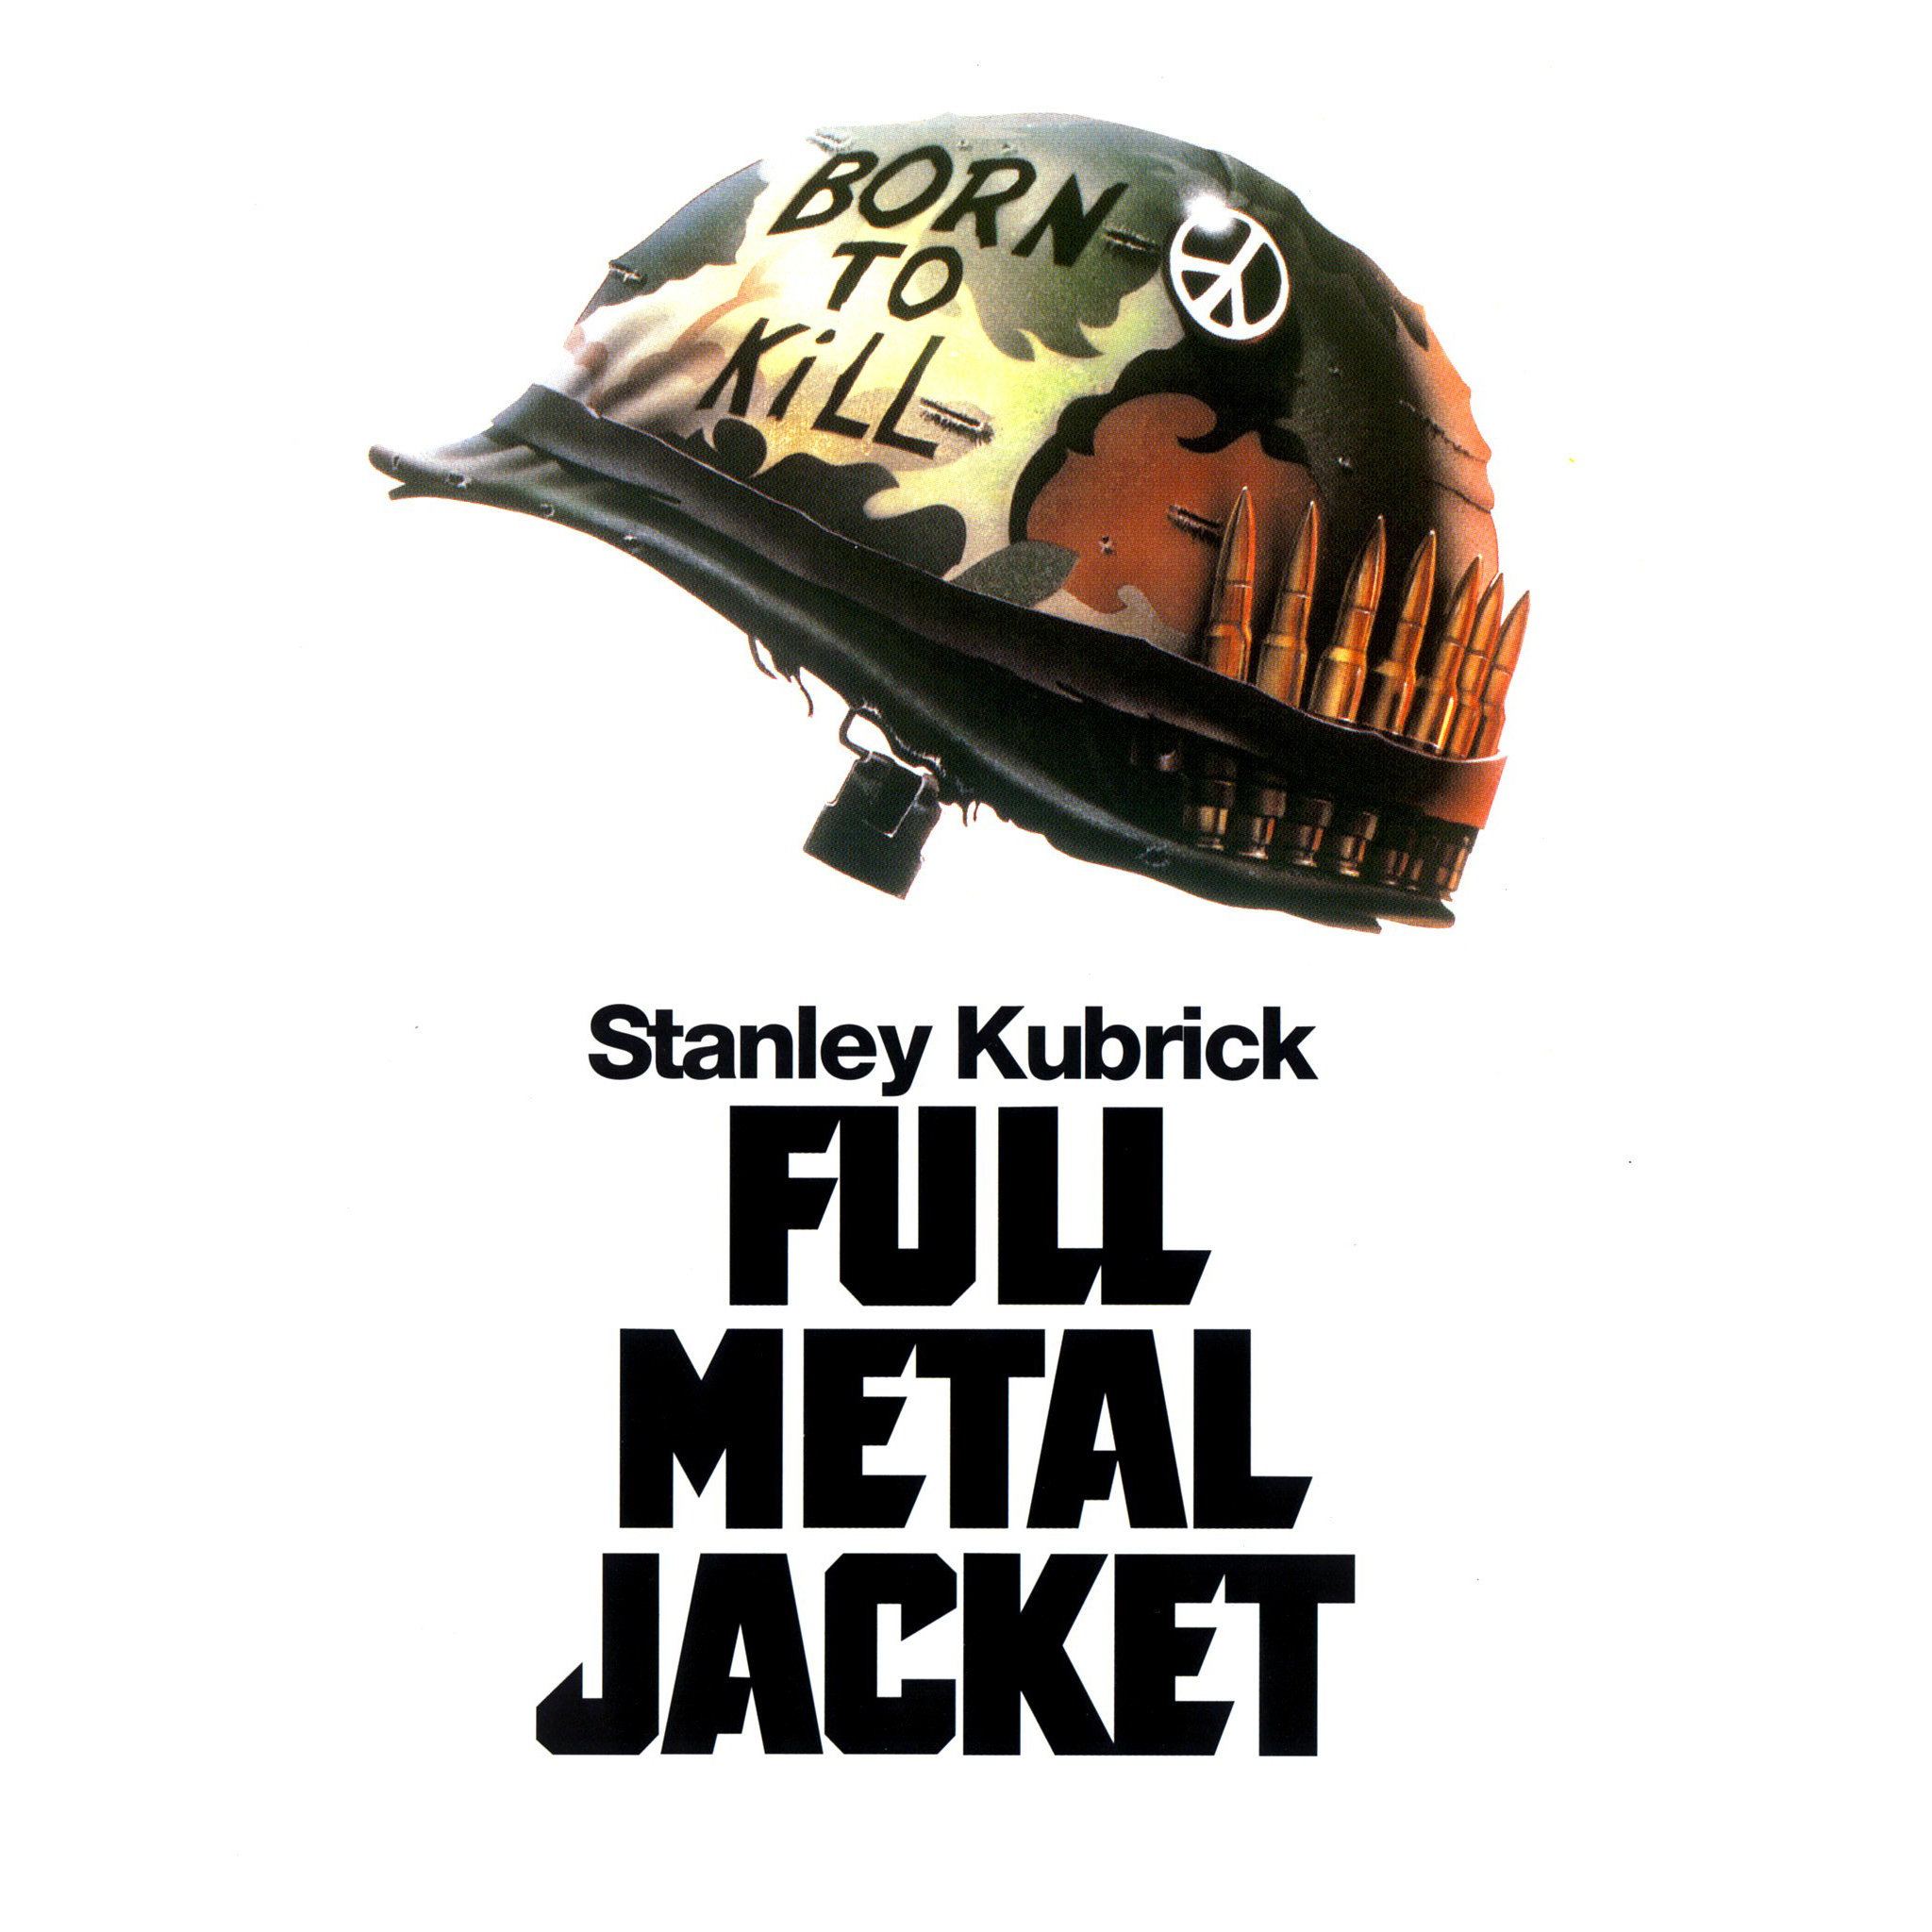 Full Metal Jacket 1987 3Wallpapers iPad Retina Full Metal Jacket   1987 (Stanley Kubrick)   iPad Retina